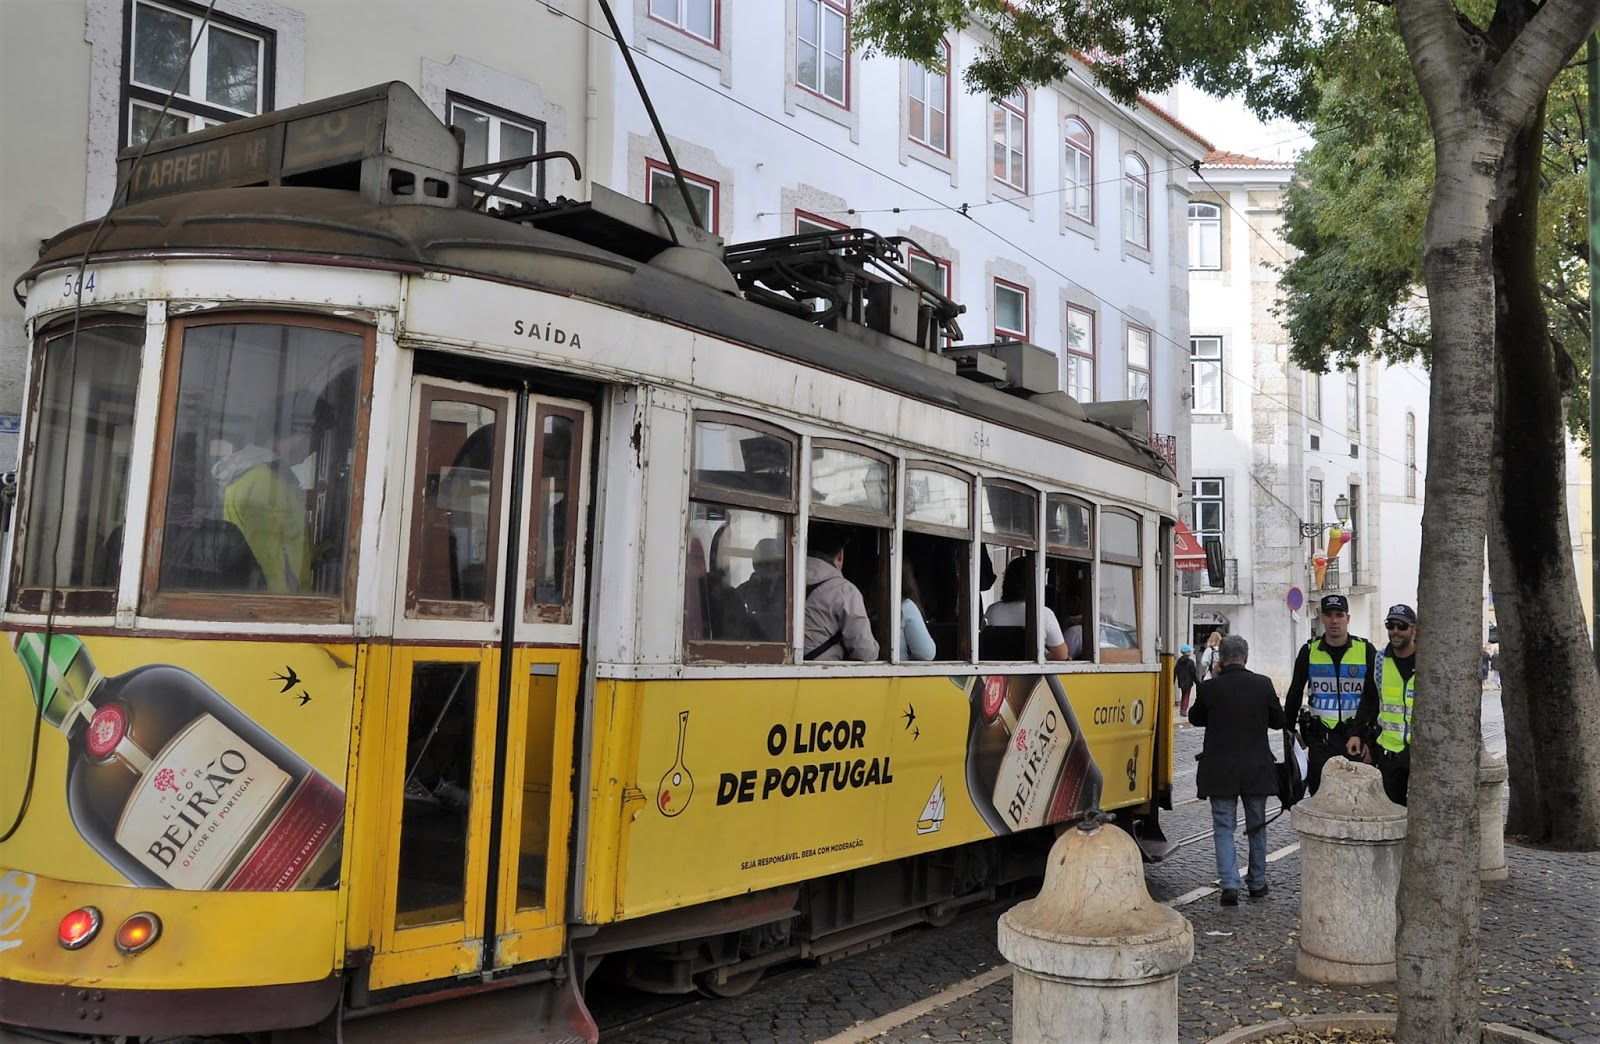 No 28 tram, 8 Great Discoveries in Lisbon, photo by Modern Bric a Brac